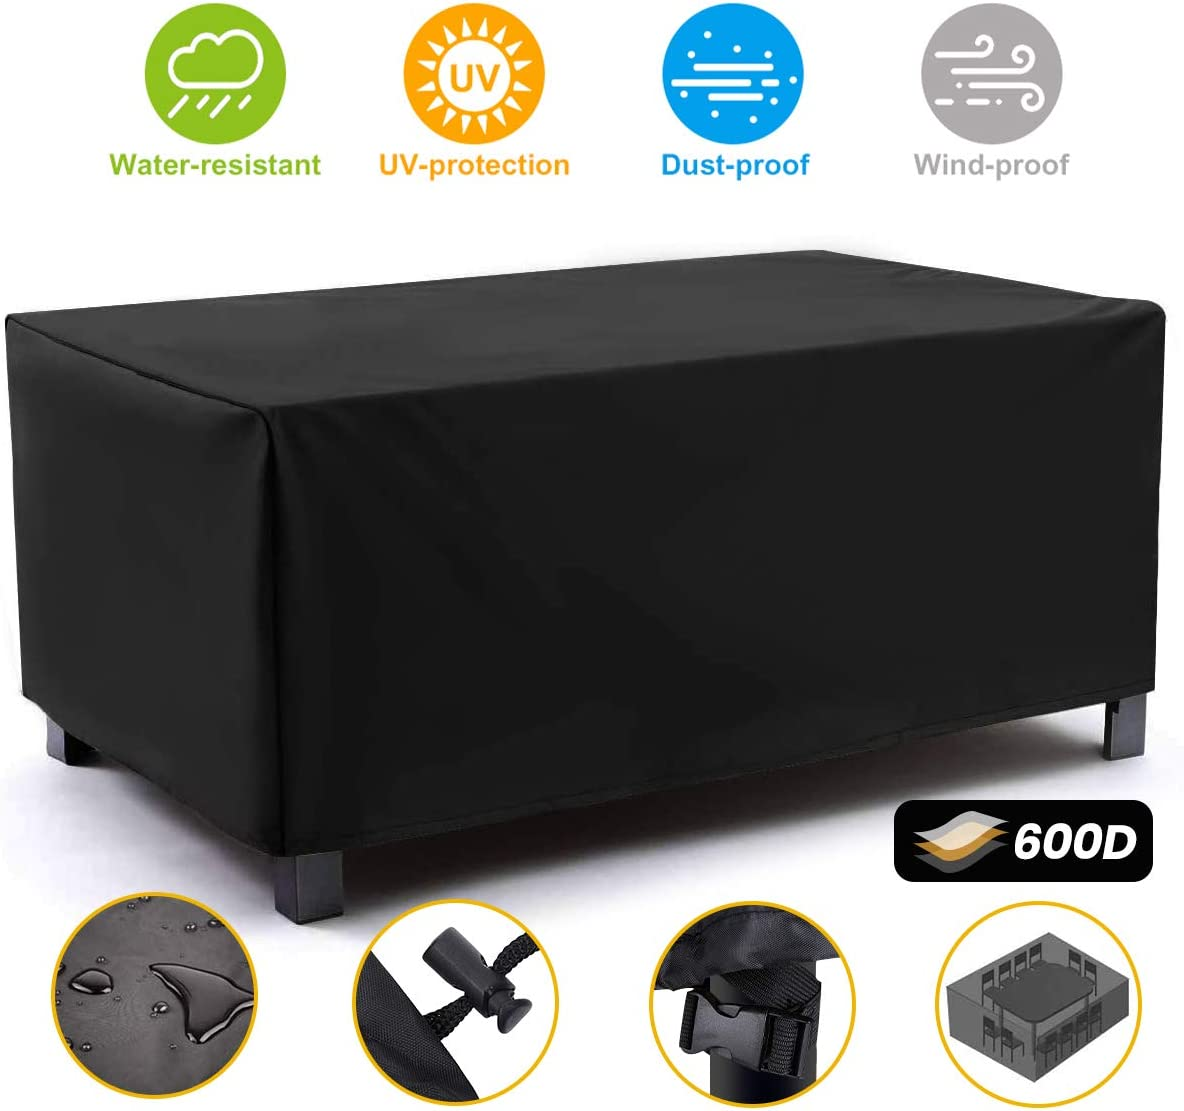 NASUM Patio Furniture Covers, 71x42x23inch, Outdoor Furniture Cover Made of 600D Heavy Duty Oxford Fabric,Waterproof Windproof Table Cover, Rain Snow Dust Wind-Proof, Anti-UV, Black Patio Square Cover: Kitchen & Dining